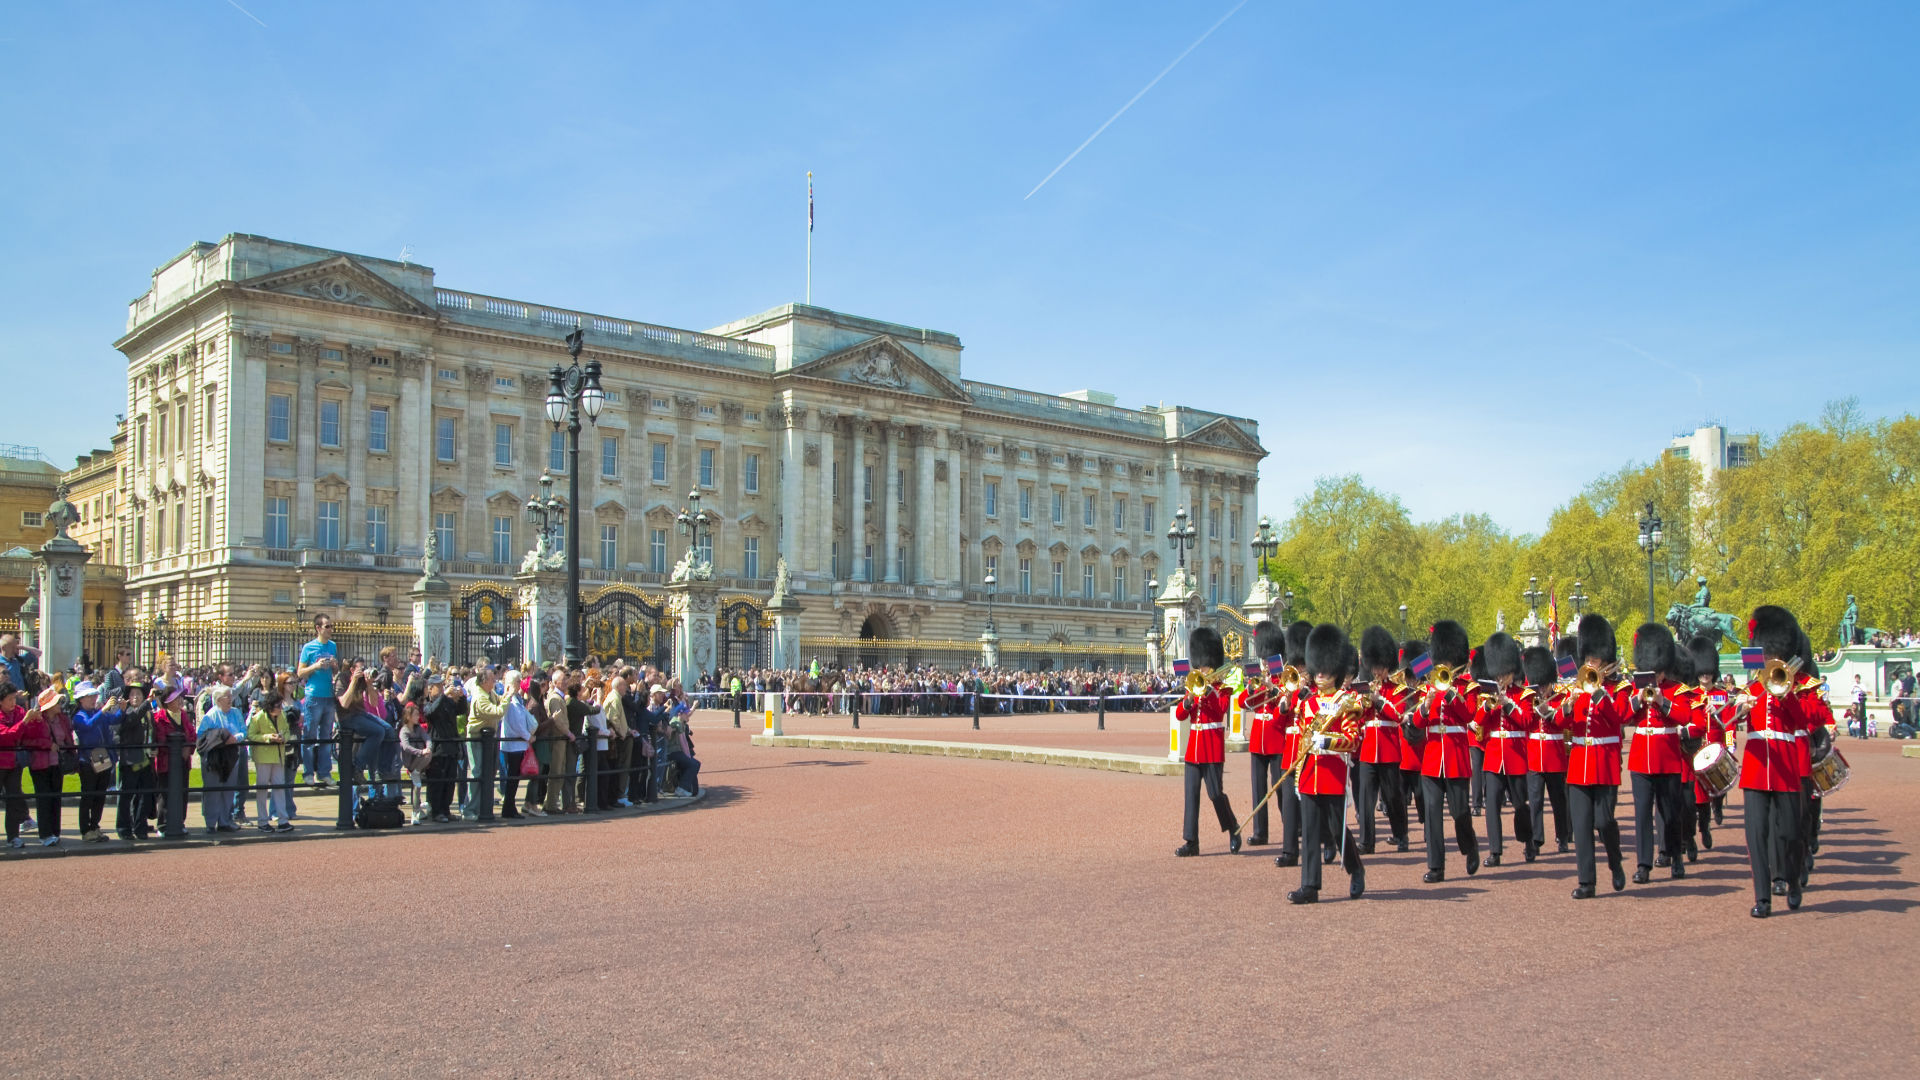 Guards march past the front of Buckingham Palace. Image courtesy of Pawel Libera.